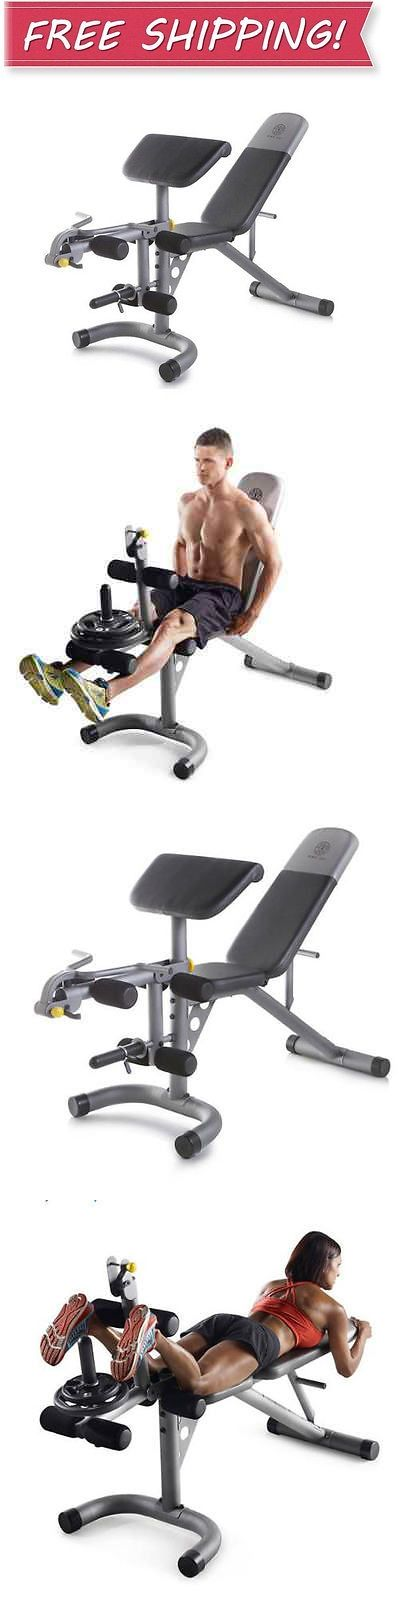 Benches 15281: Golds Gym Olympic Weight Bench Workout Home Gym Exercise Adjustable Incline New -> BUY IT NOW ONLY: $115.95 on eBay!